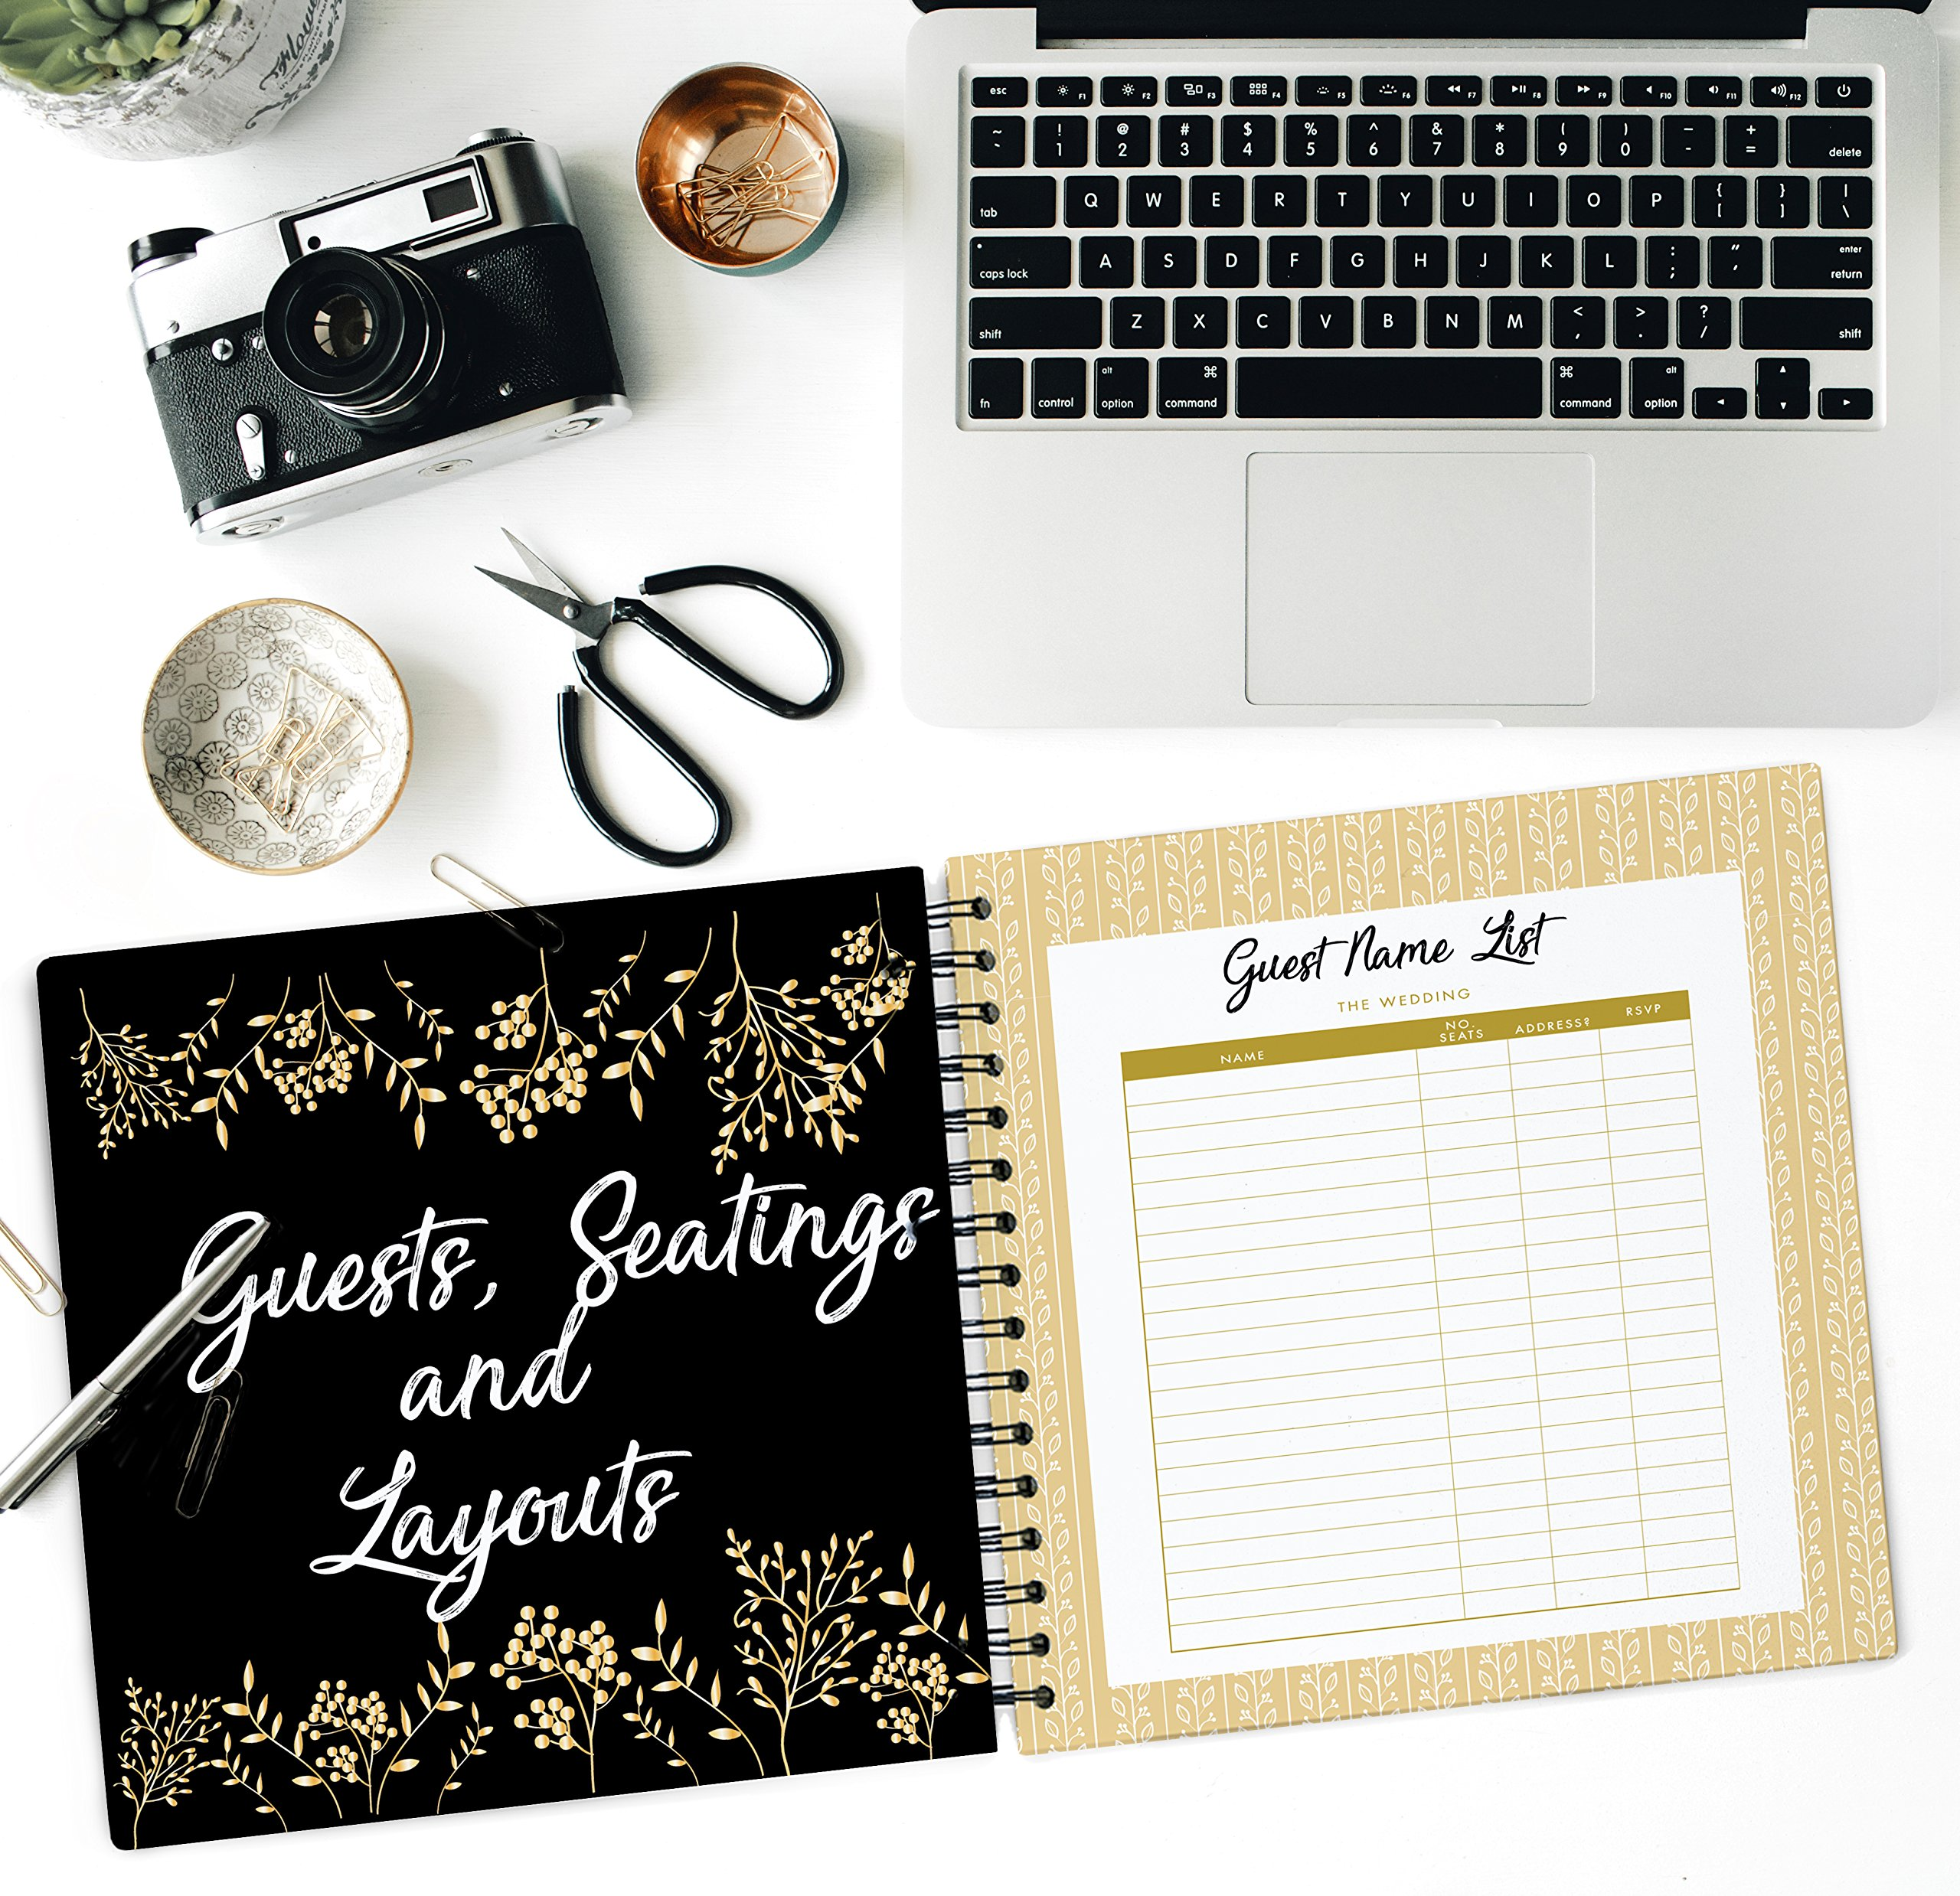 The Ultimate Wedding Planner – A Complete 80 Pages Hardcover Organizer that Includes Checklists, Party Planner, Budget Organizer, Honeymoon and More to Help You Organize The Wedding of Your Dreams! by Unconditional Rosie (Image #5)